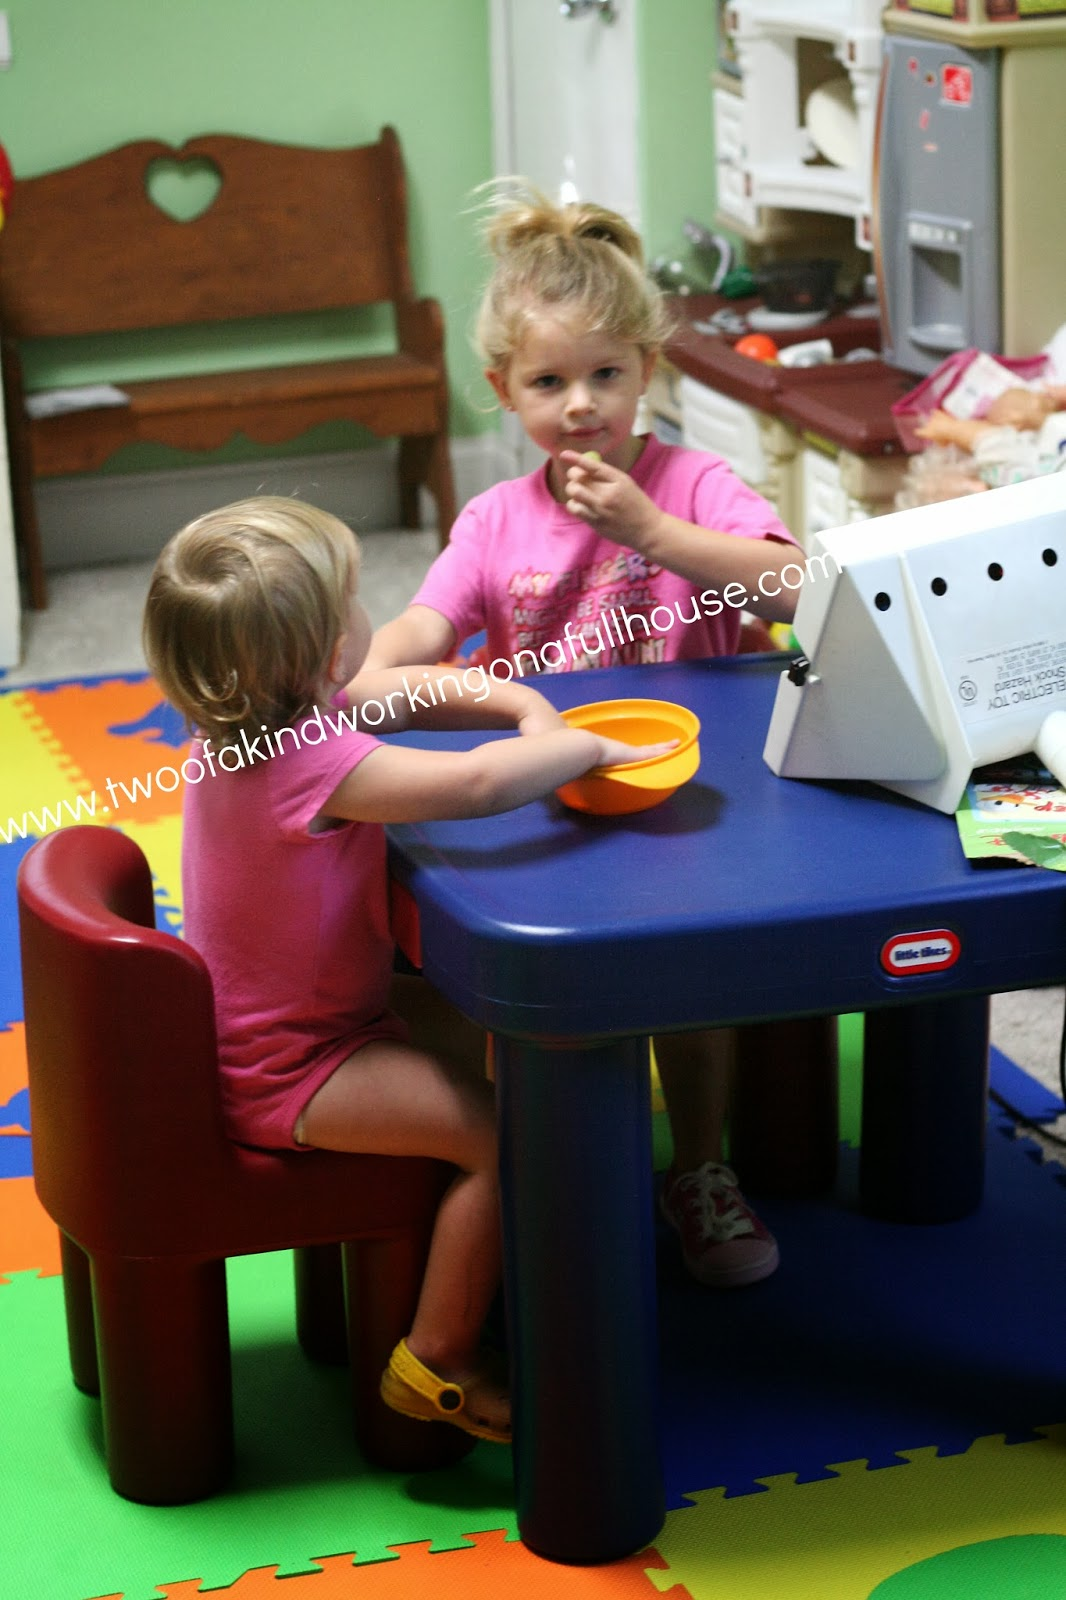 Little Tikes Large Table & Chairs Review + Giveaway | Two of a kind ...